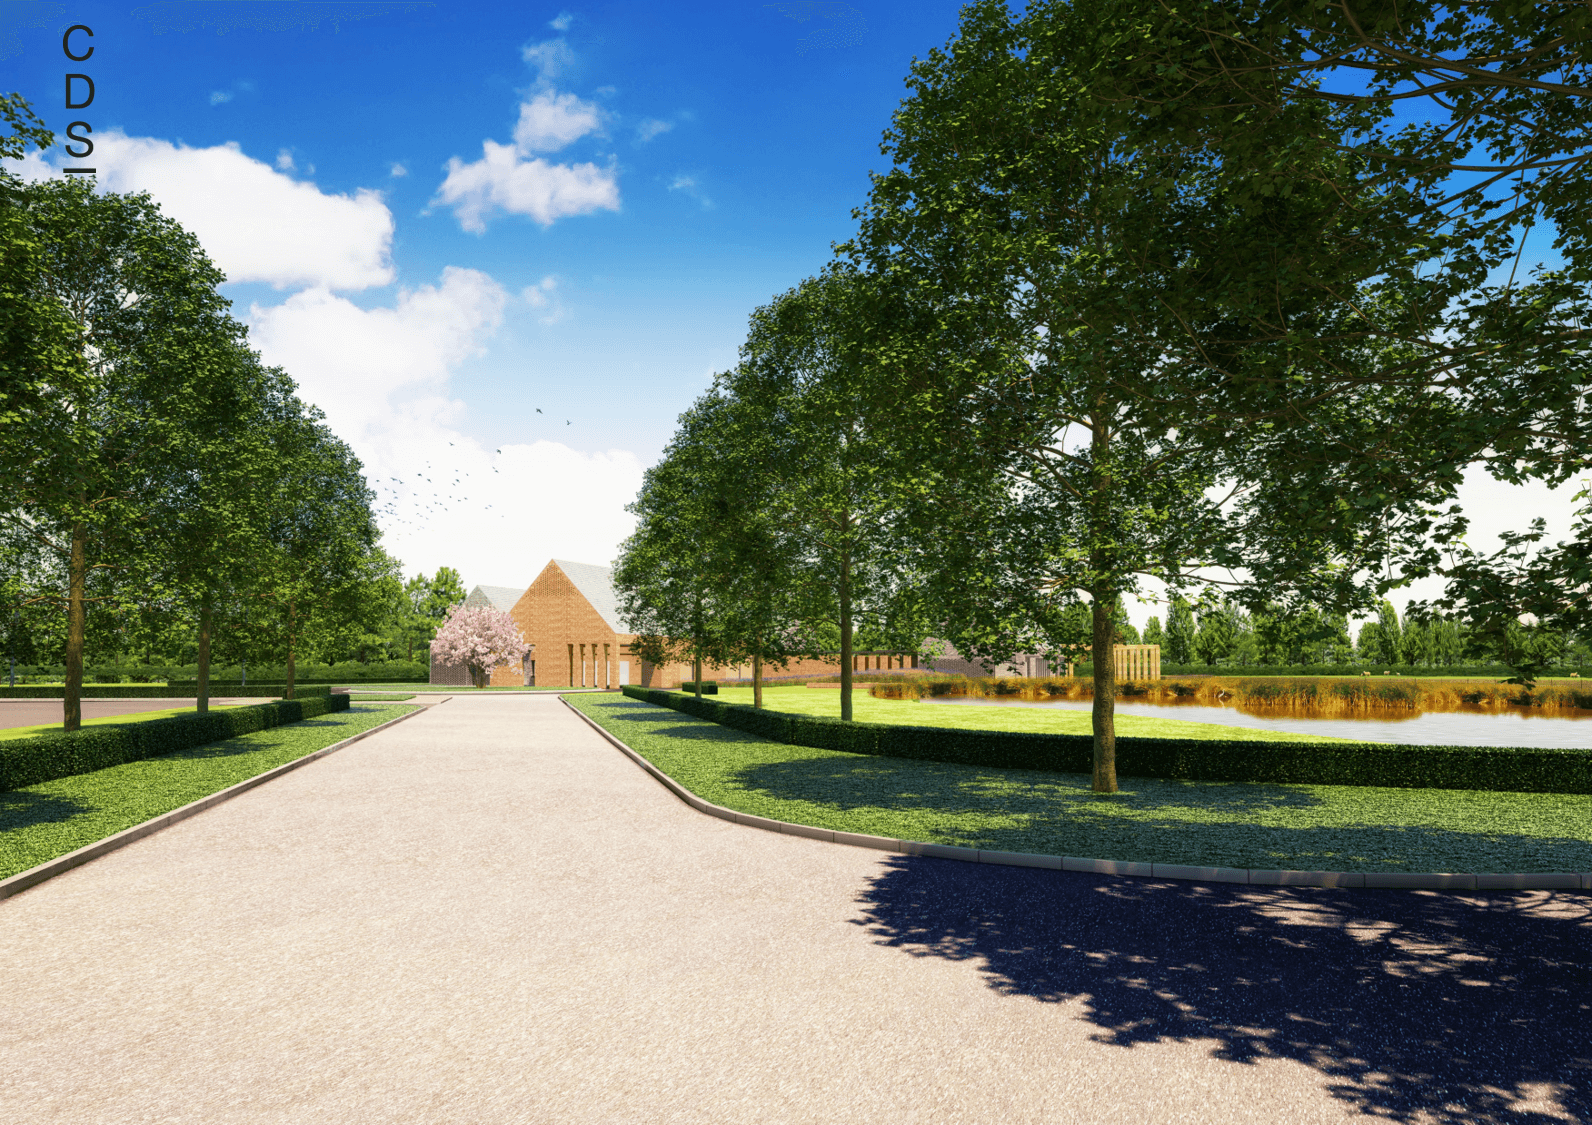 Hambleton Crematorium Driveway Entrance, Landscaping Design